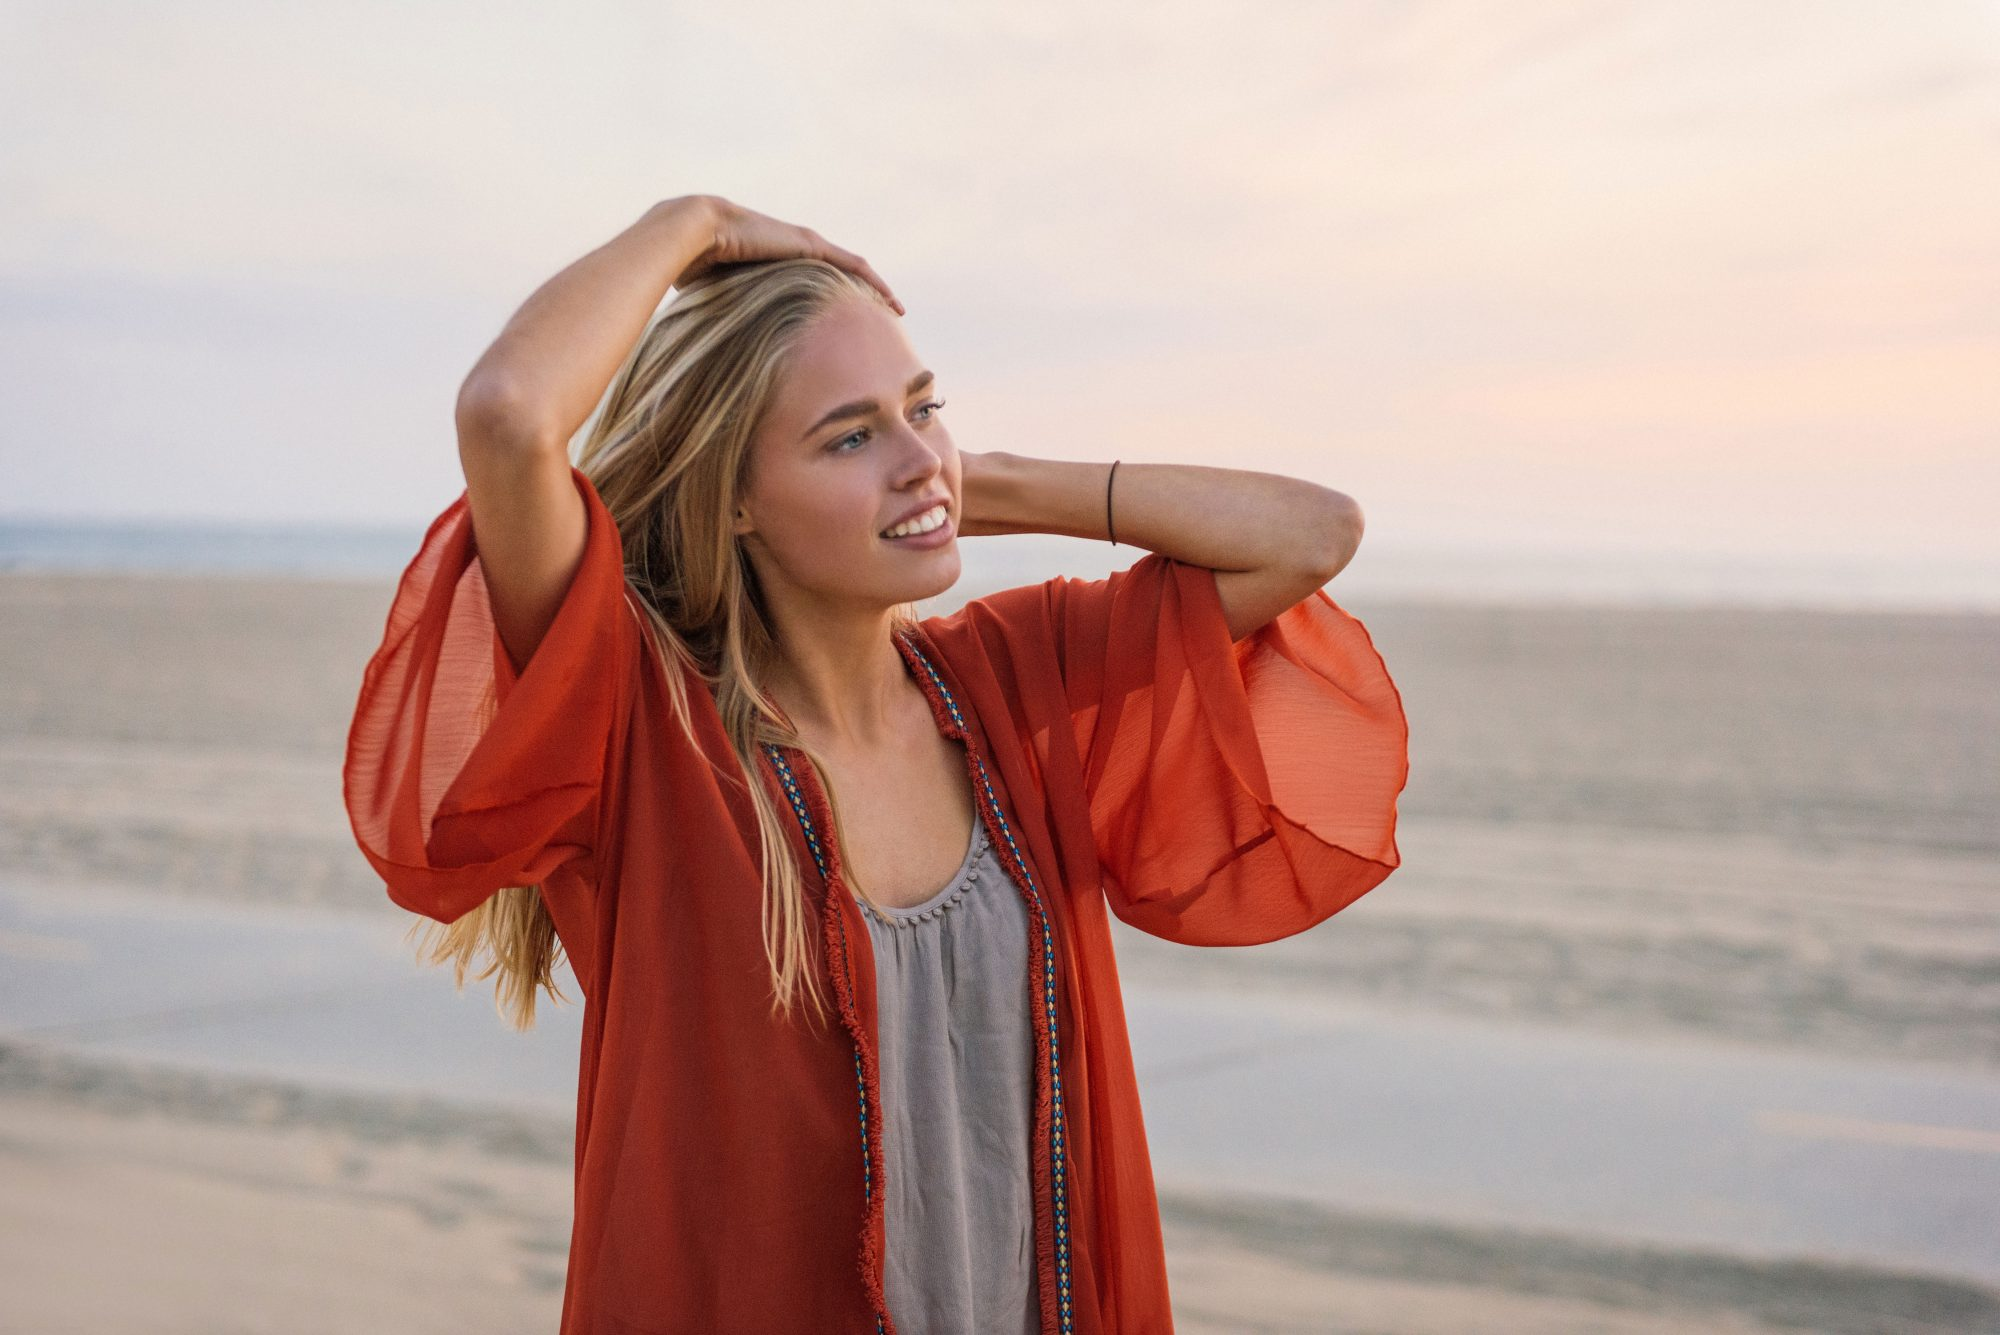 Woman on Beach with Long Blonde Hair